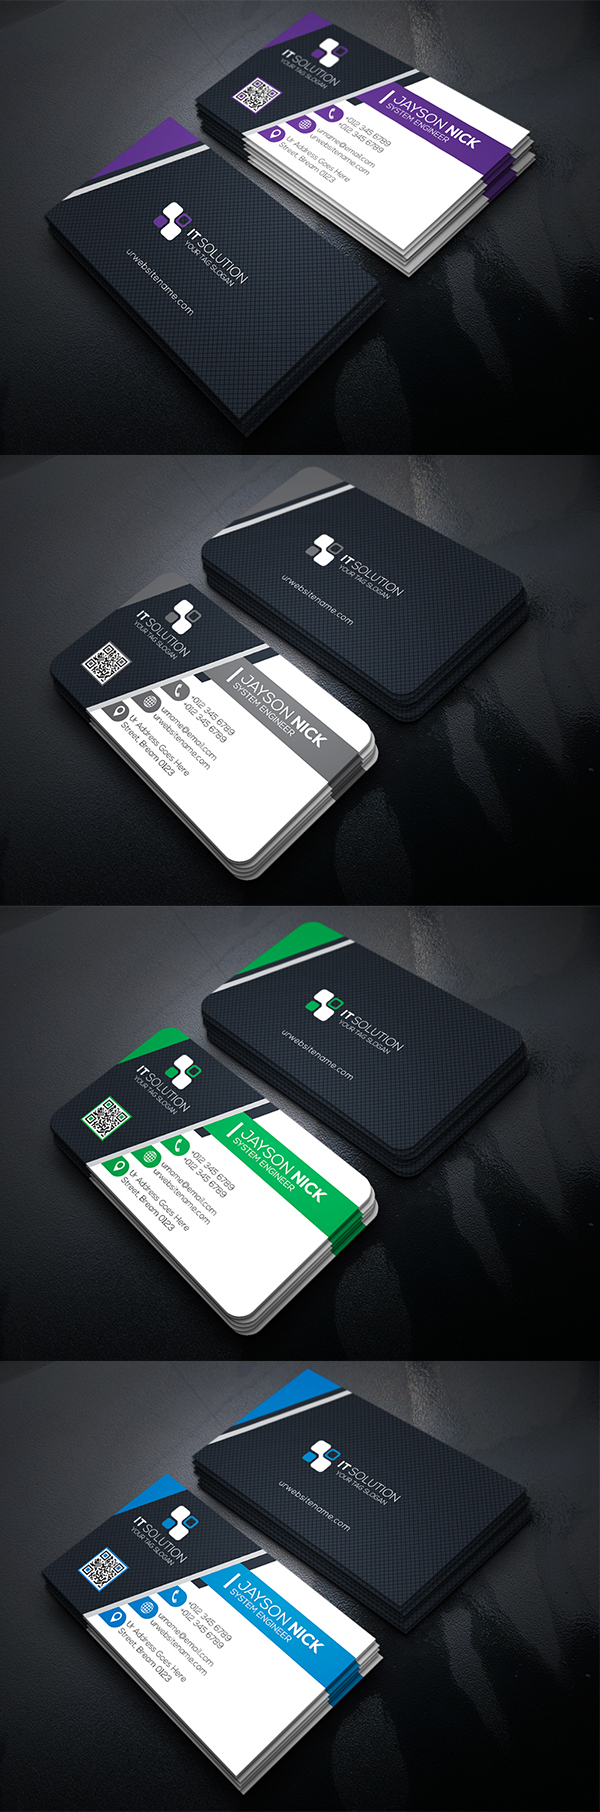 11 Business Card Design